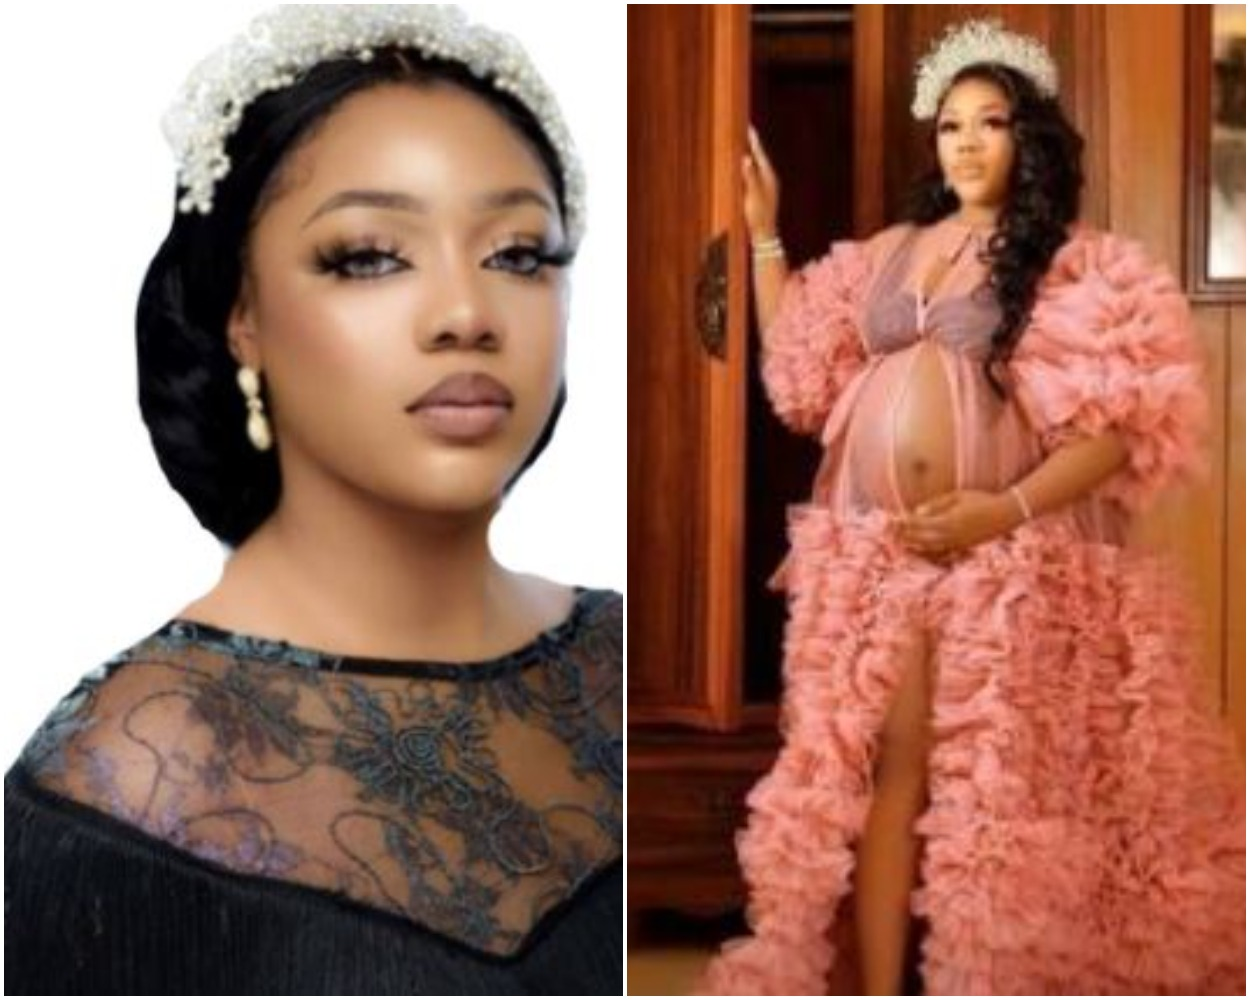 KolaqAlagbo Boss And His Second Wife, Kayamata Queen Miwa, Welcome Their Son